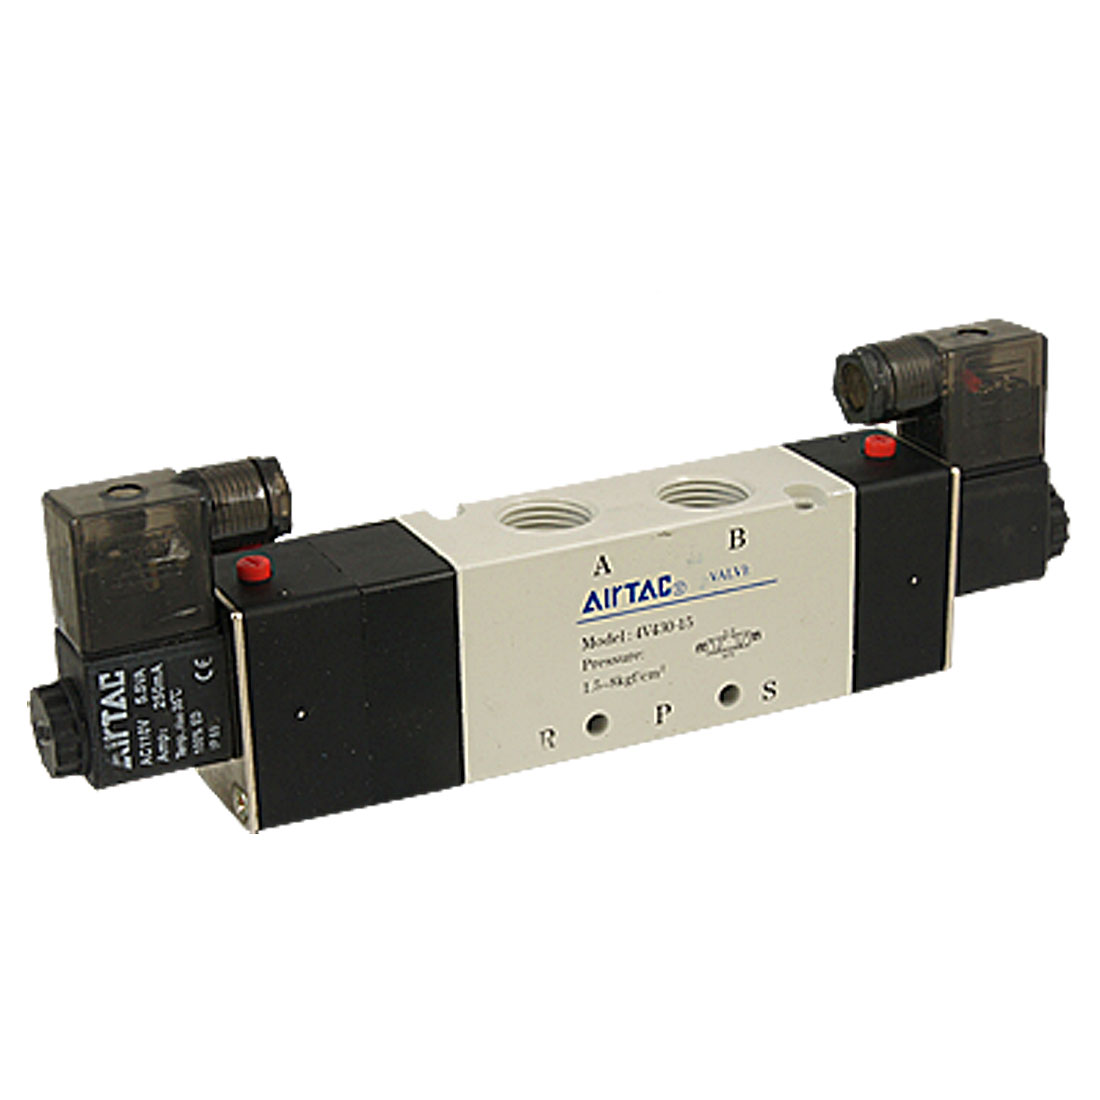 AC 110V 4V430-15 3 Position 5 Way Air Control Solenoid Valve